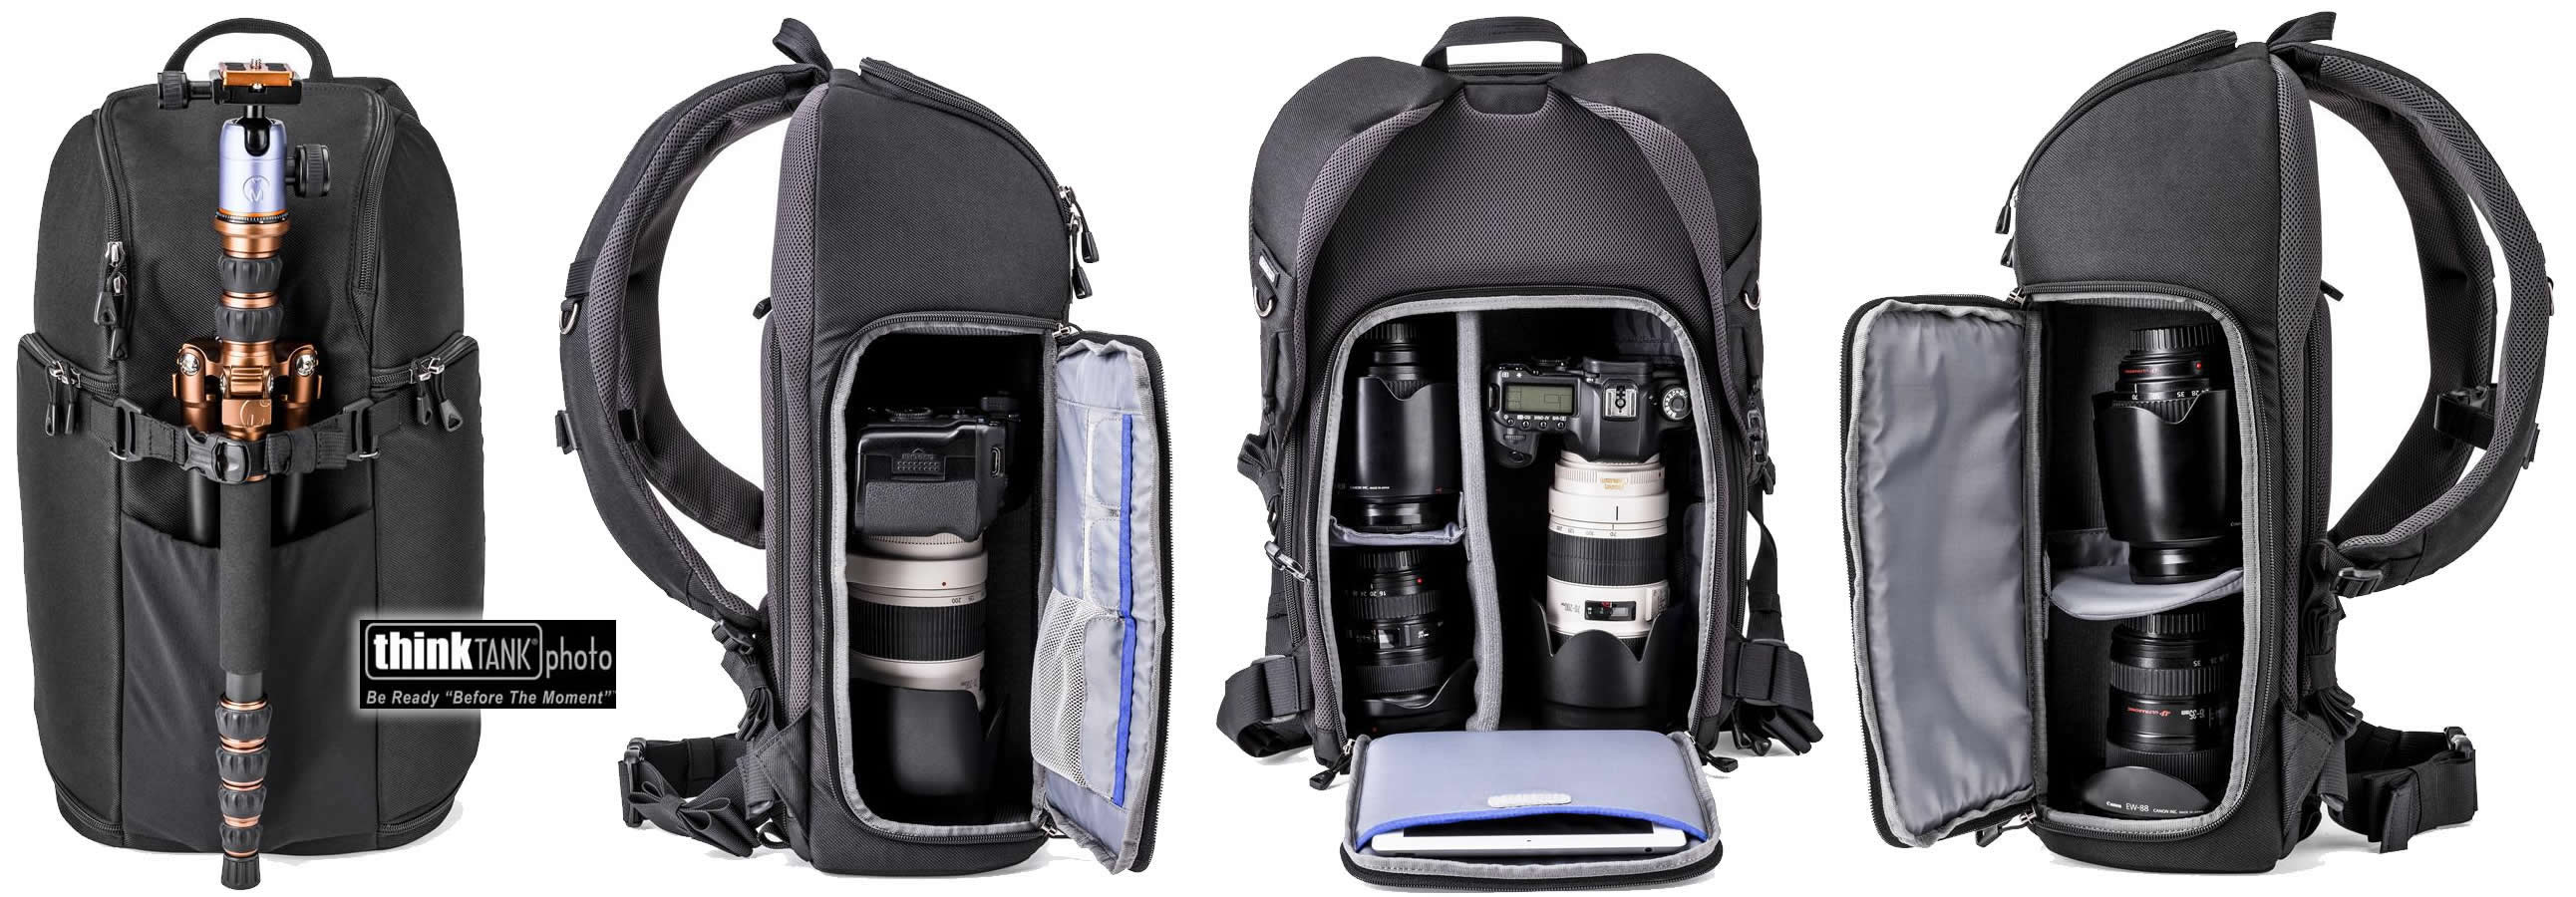 thinkTANK photo Trifecta Backpack – 3 Wege zum Glück